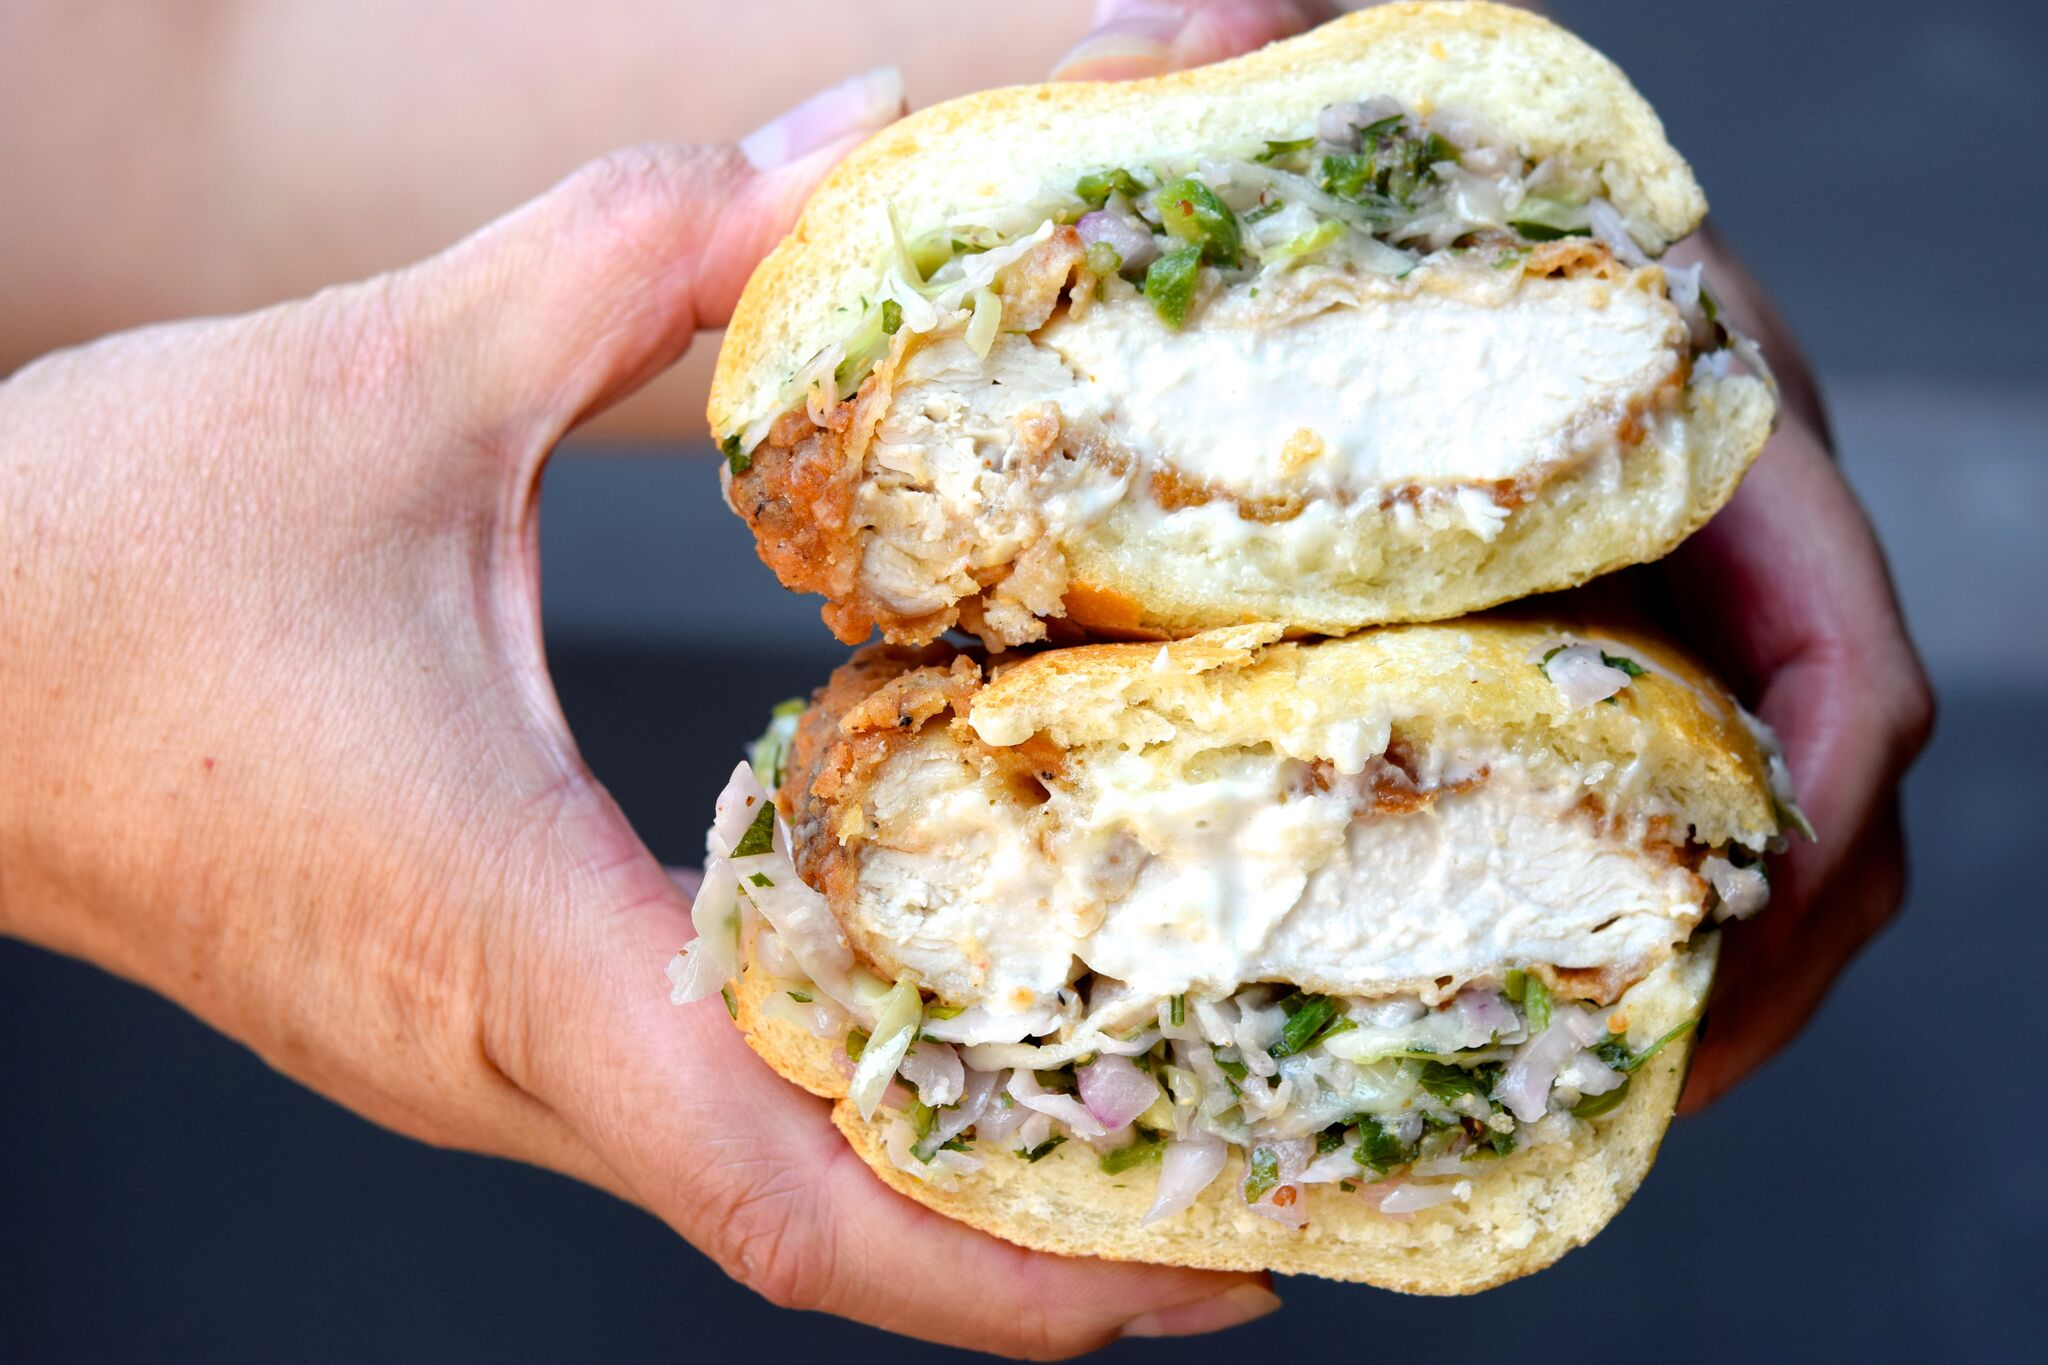 The Kroft's Fried Chicken Sandwich